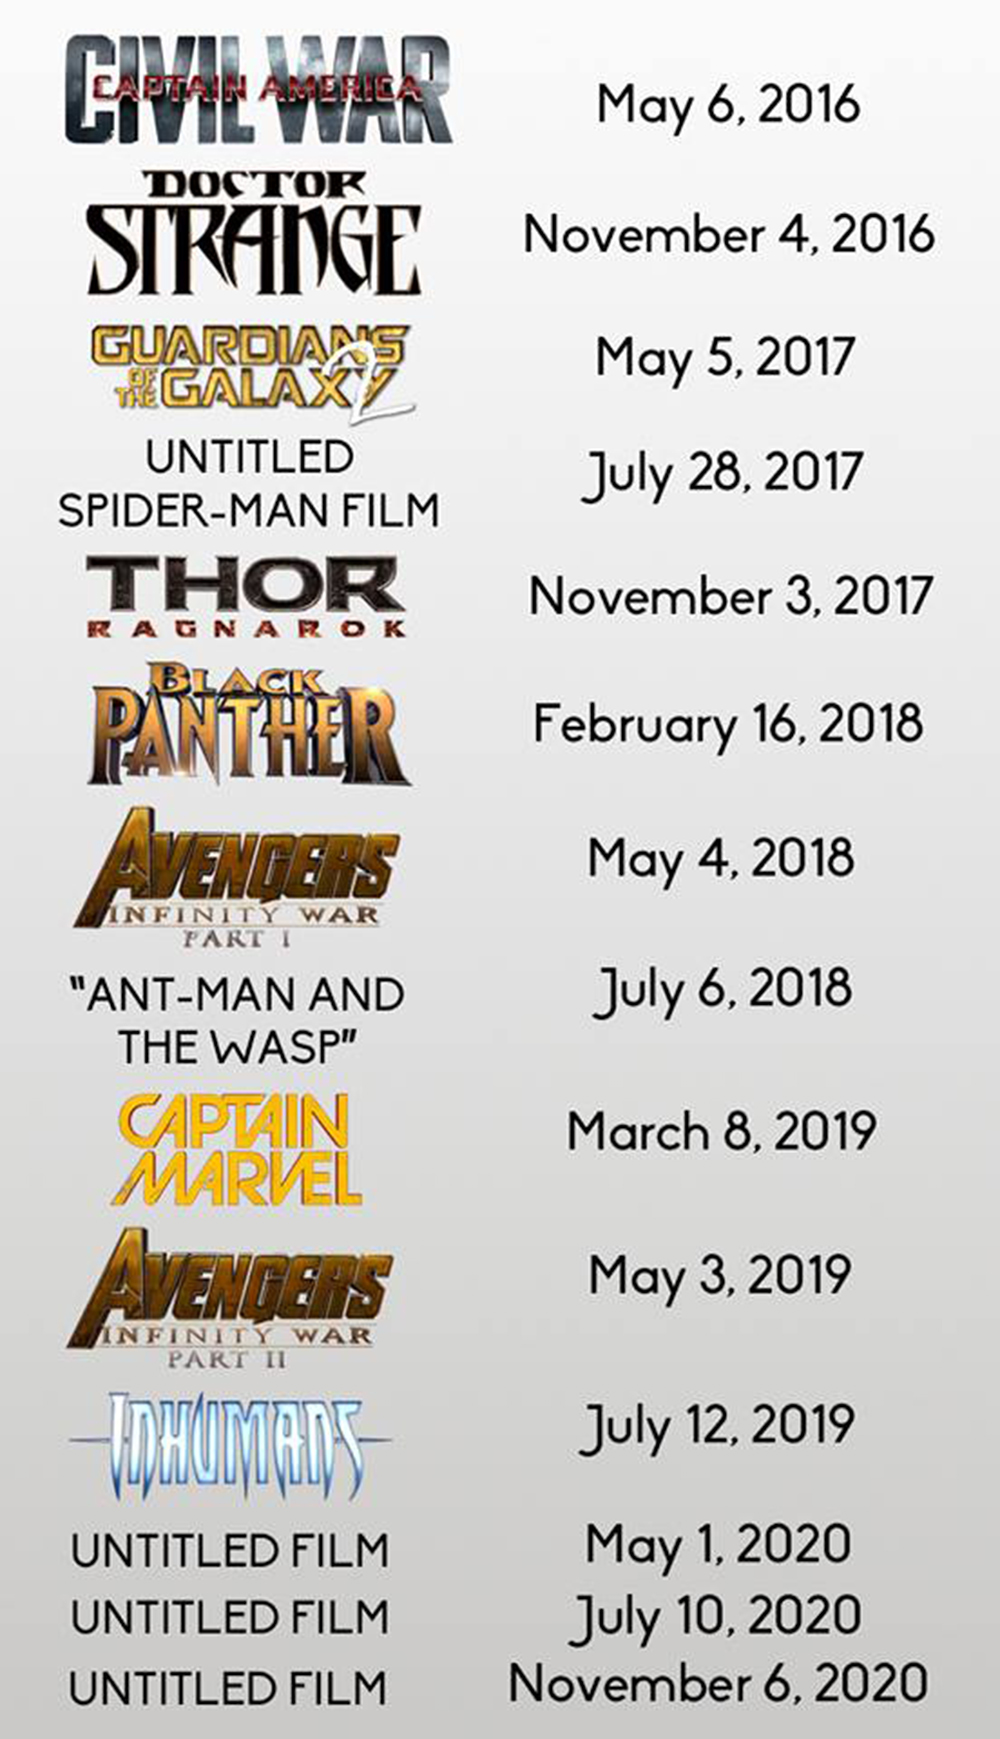 Marvel movies by release date in Sydney